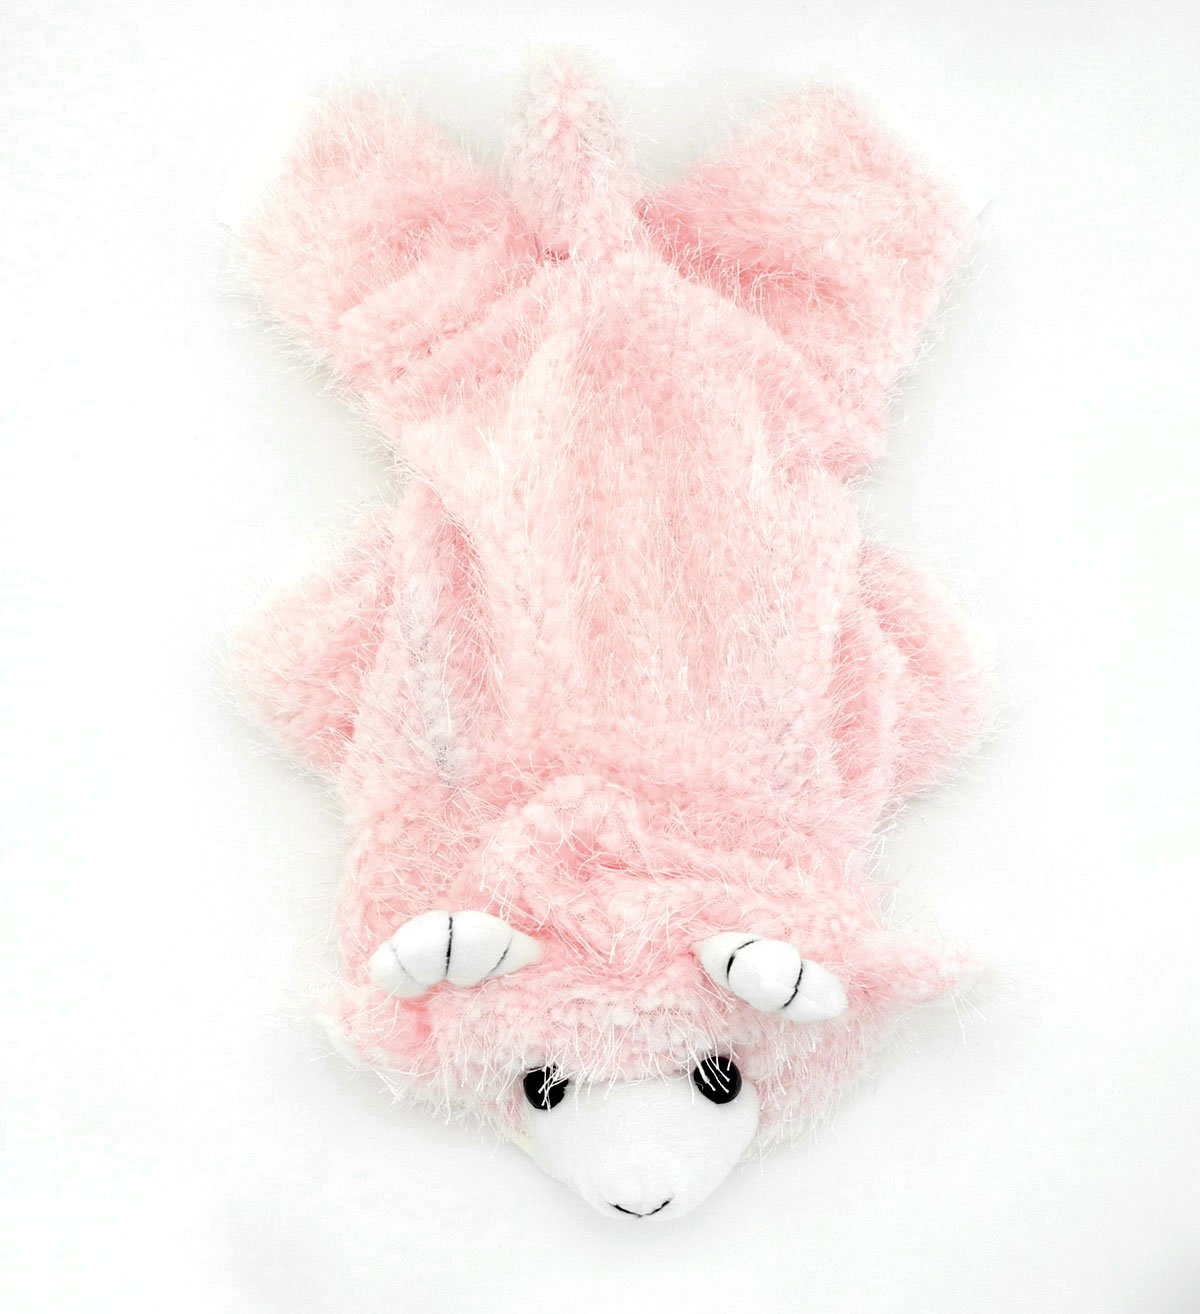 SELMAI Goat Animal Dog Halloween Costumes Hooded Dog Coat Jumpsuit Small Puppy Pet Cat Warm Clothes Pink M